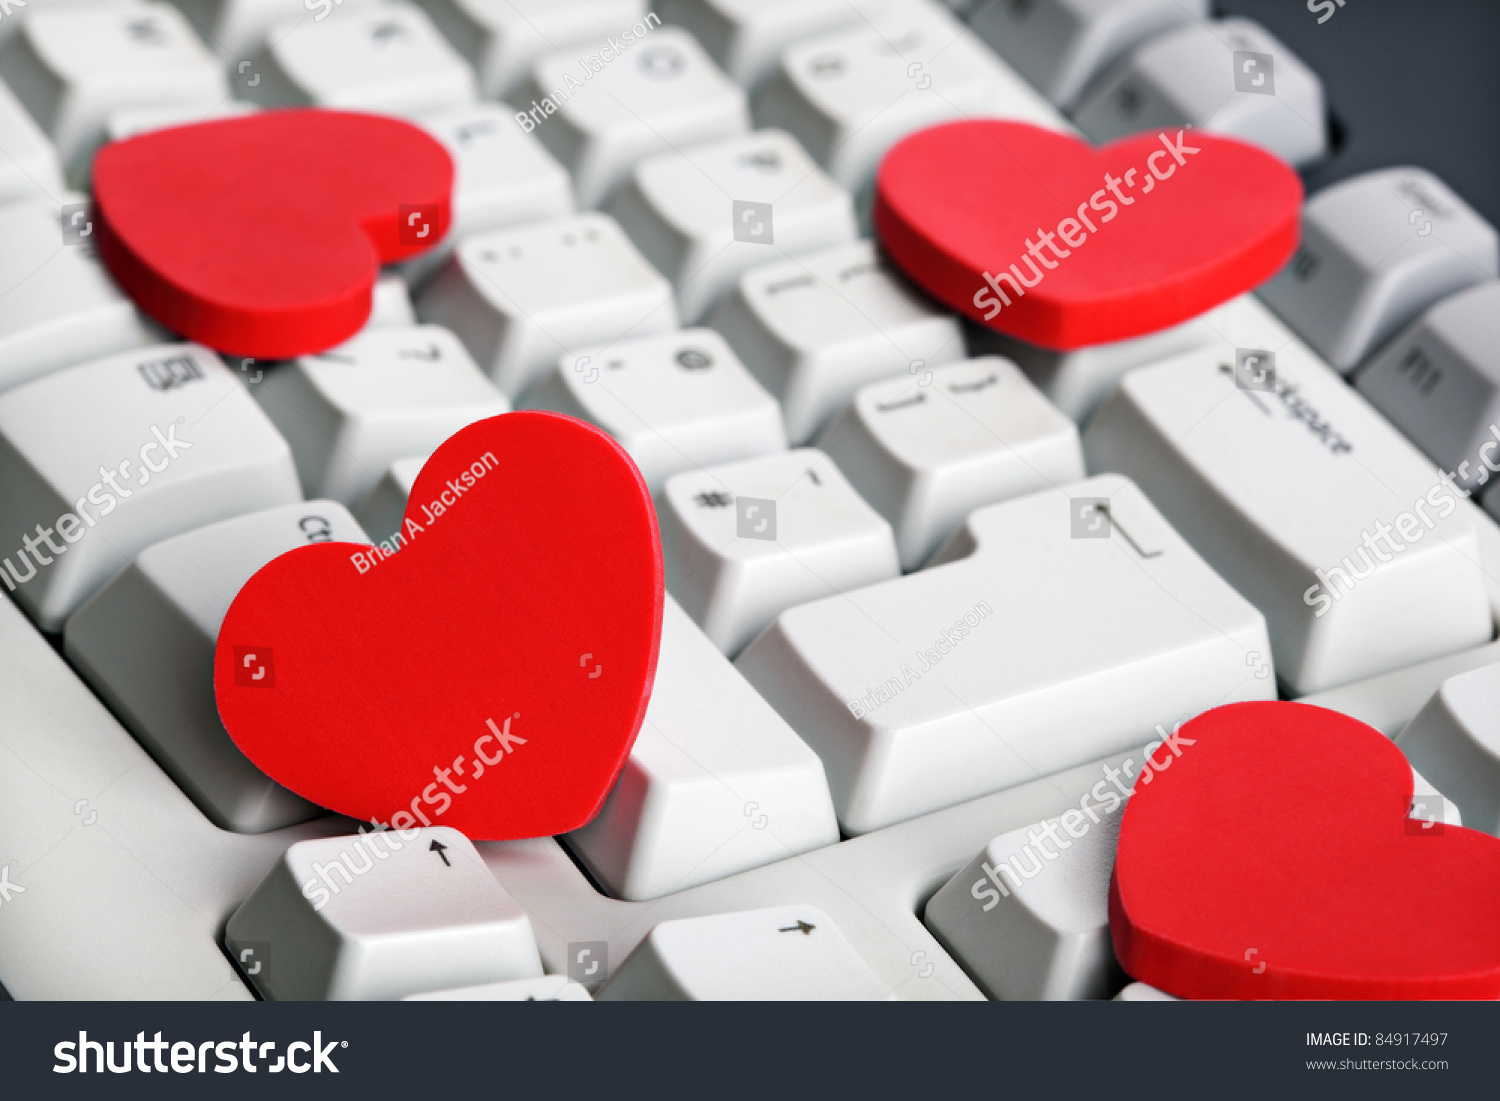 Love online dating concept red heart stock photo 84917497 shutterstock love or online dating concept red heart shape symbol on white computer keyboard buycottarizona Choice Image